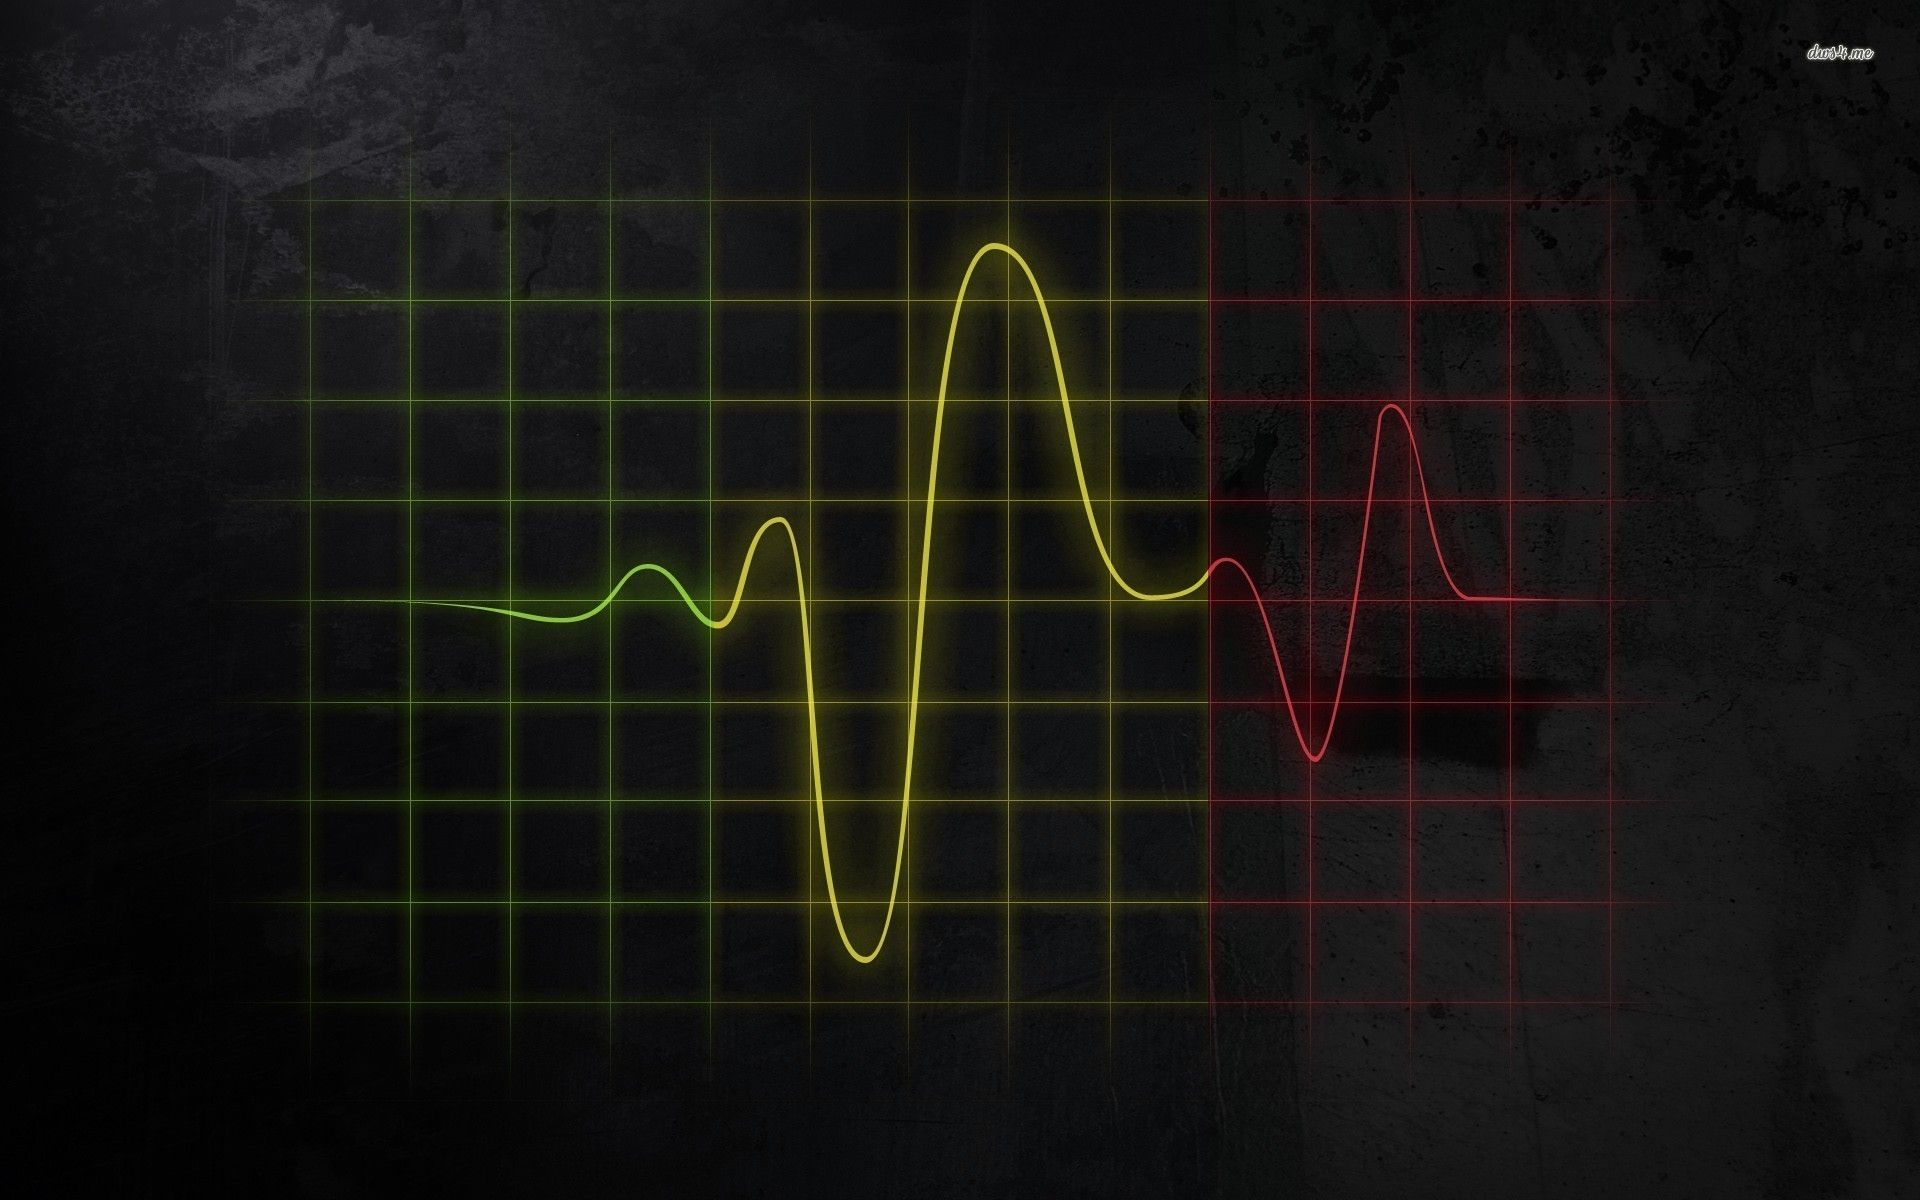 Sound Waves Wallpapers   Full HD wallpaper search 1920x1200